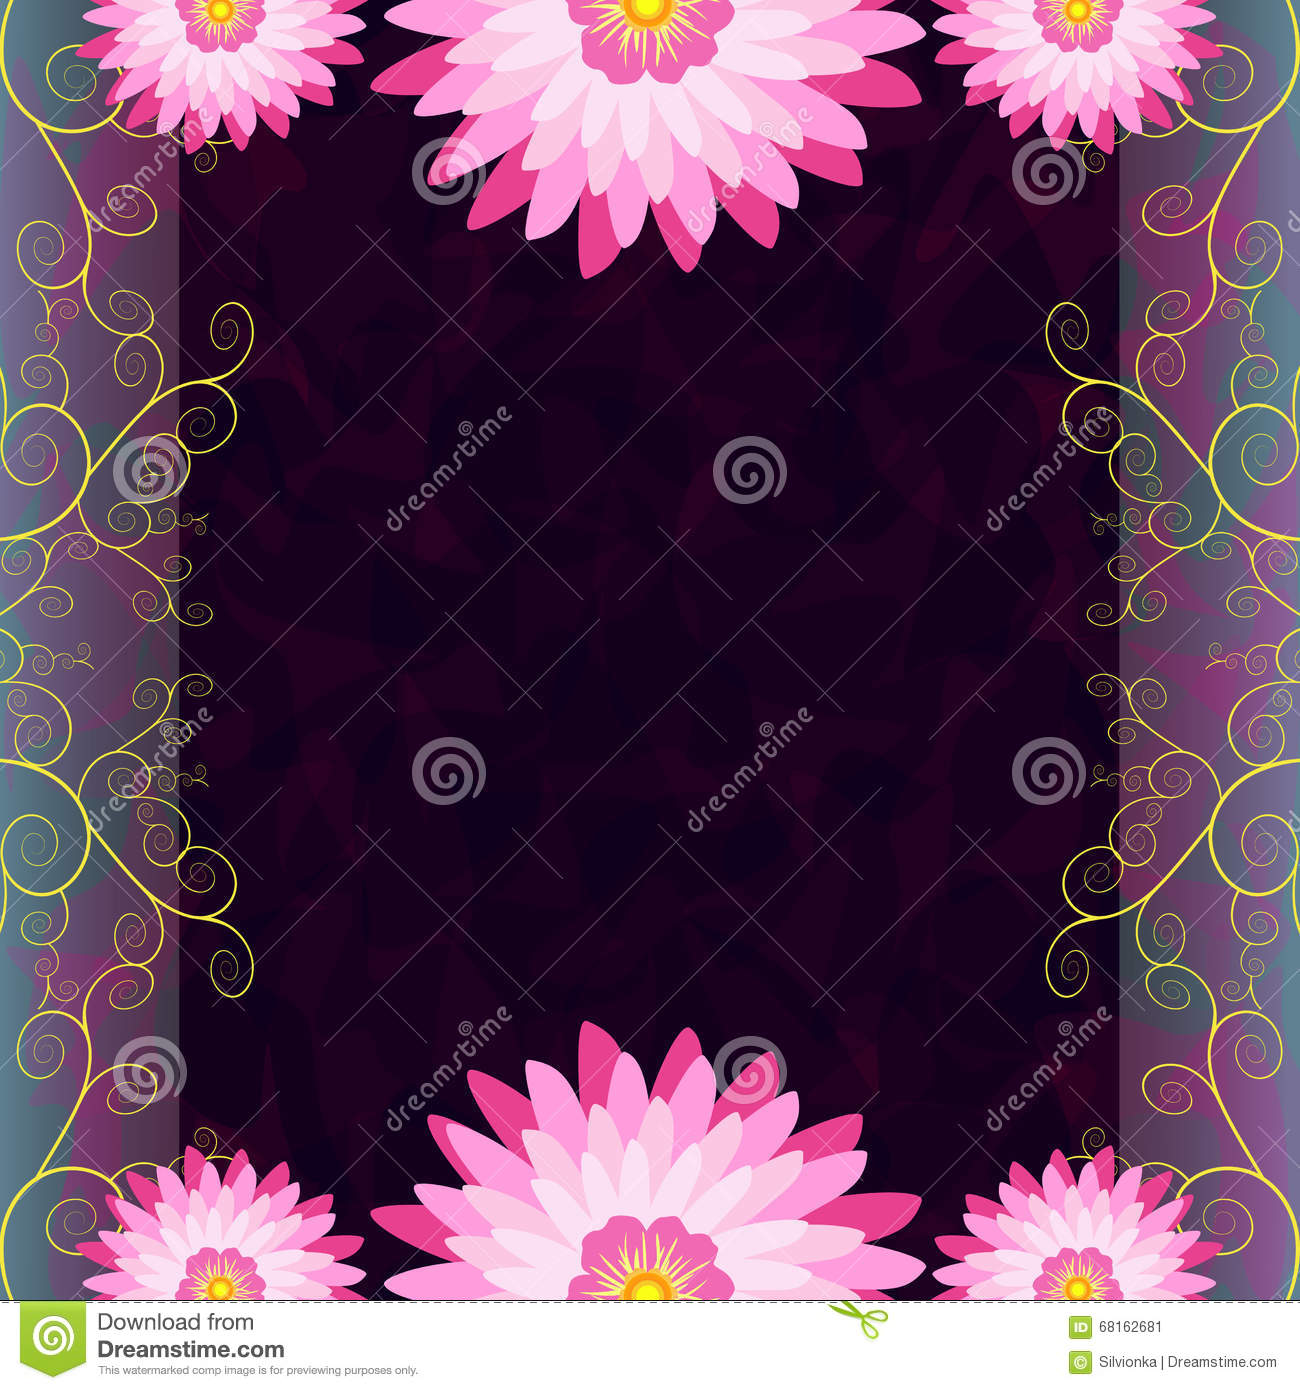 Vintage invitation or greeting card with flowers stock vector vintage luxury dark background with pink purple flowers and golden swirls for greeting or invitation card cover menu presentation anniversary mightylinksfo